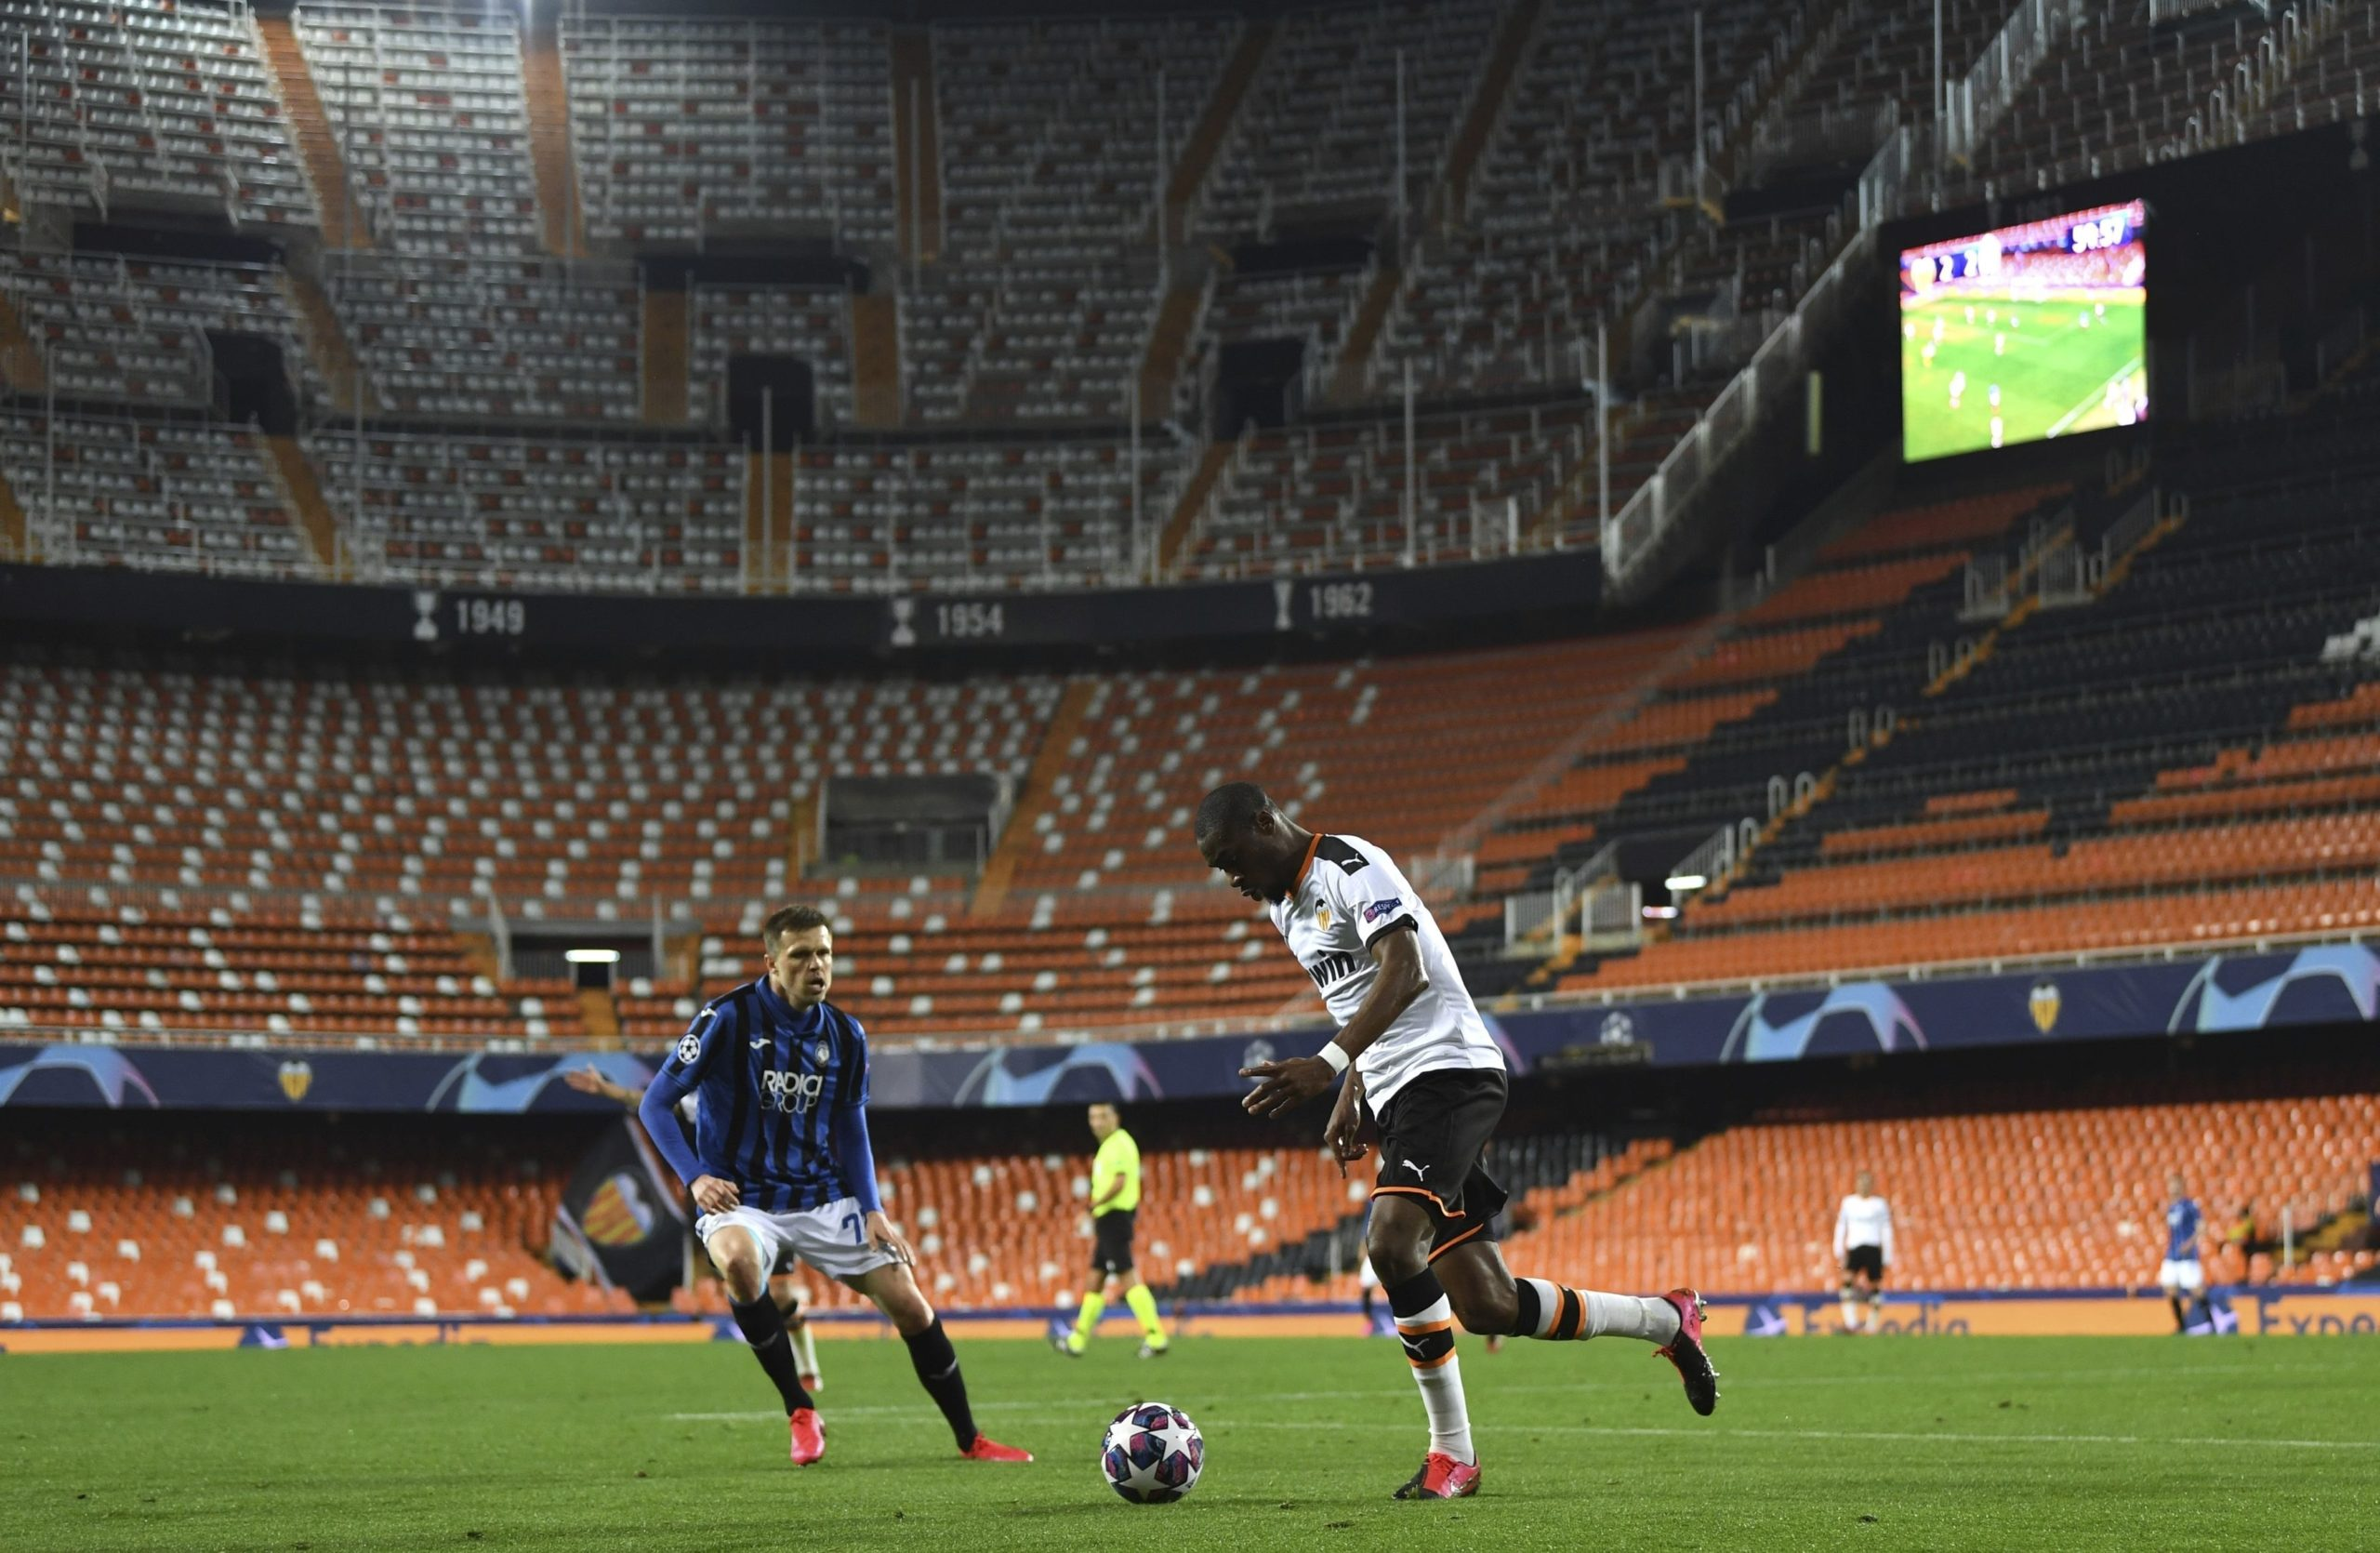 Valencia played in the Champions League behind closed doors.